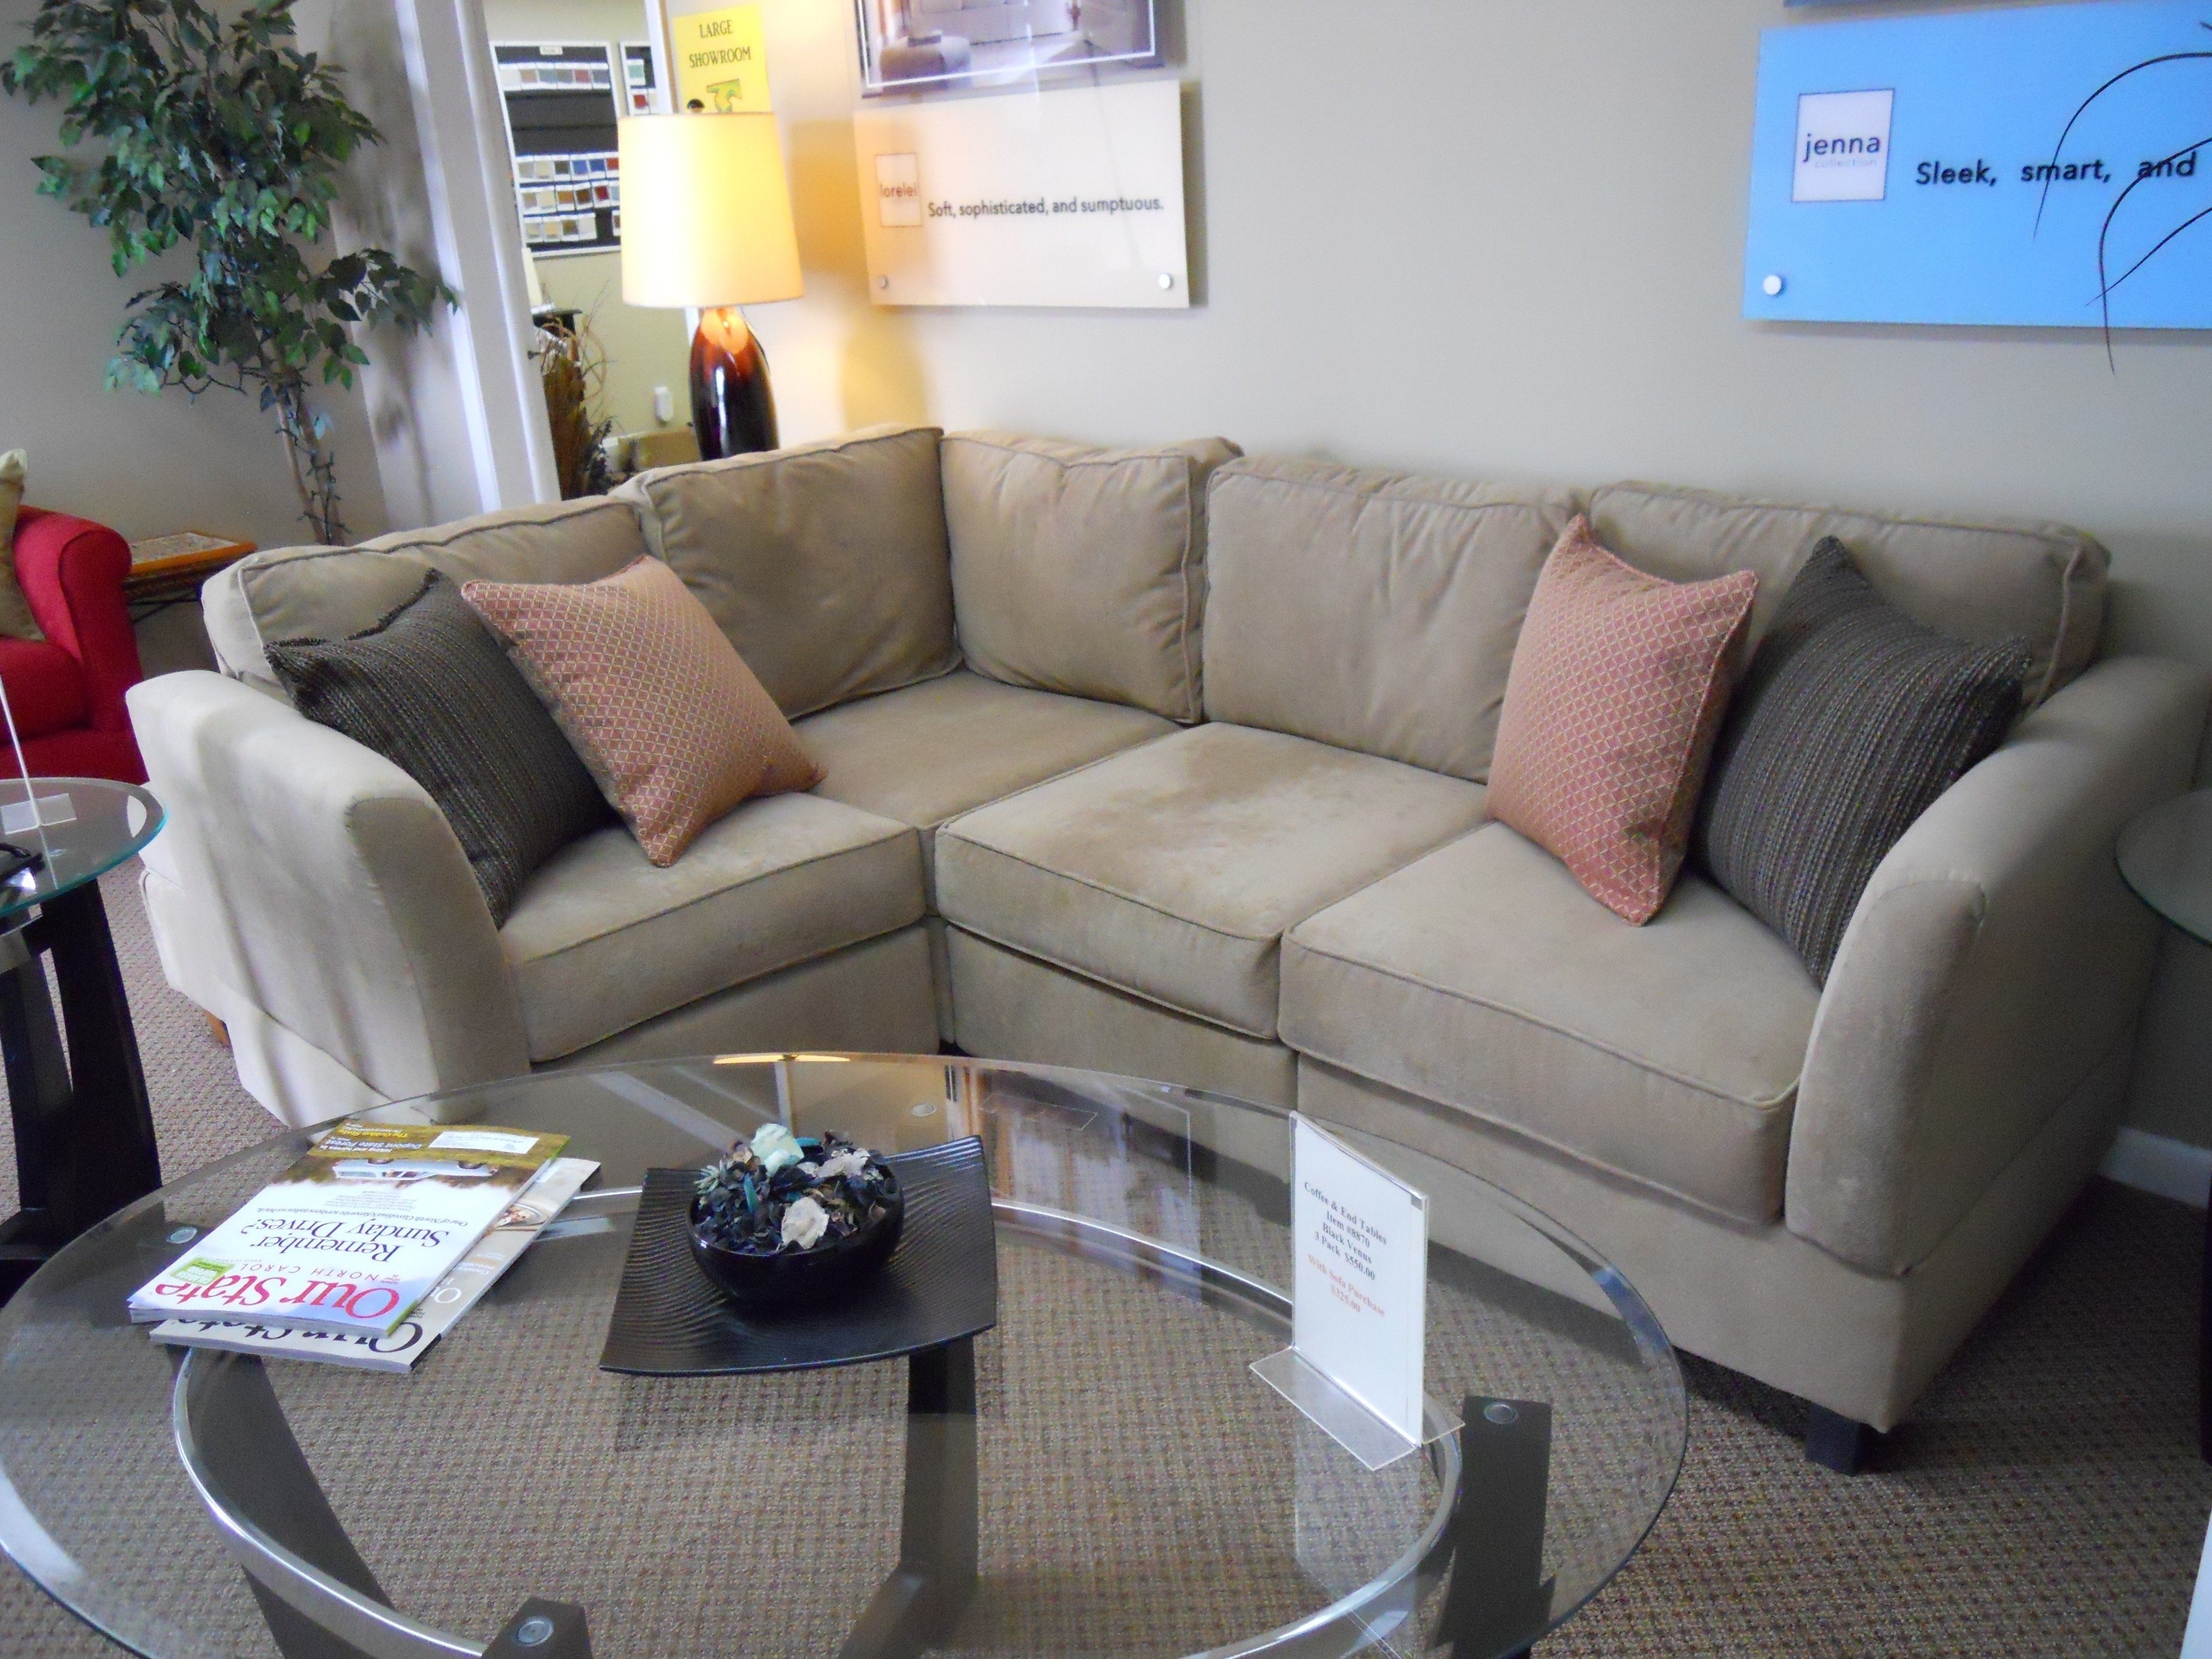 Reclining Sectional Sofas For Small Spaces W Script With Small for Sectional Sofas for Small Areas (Image 6 of 10)